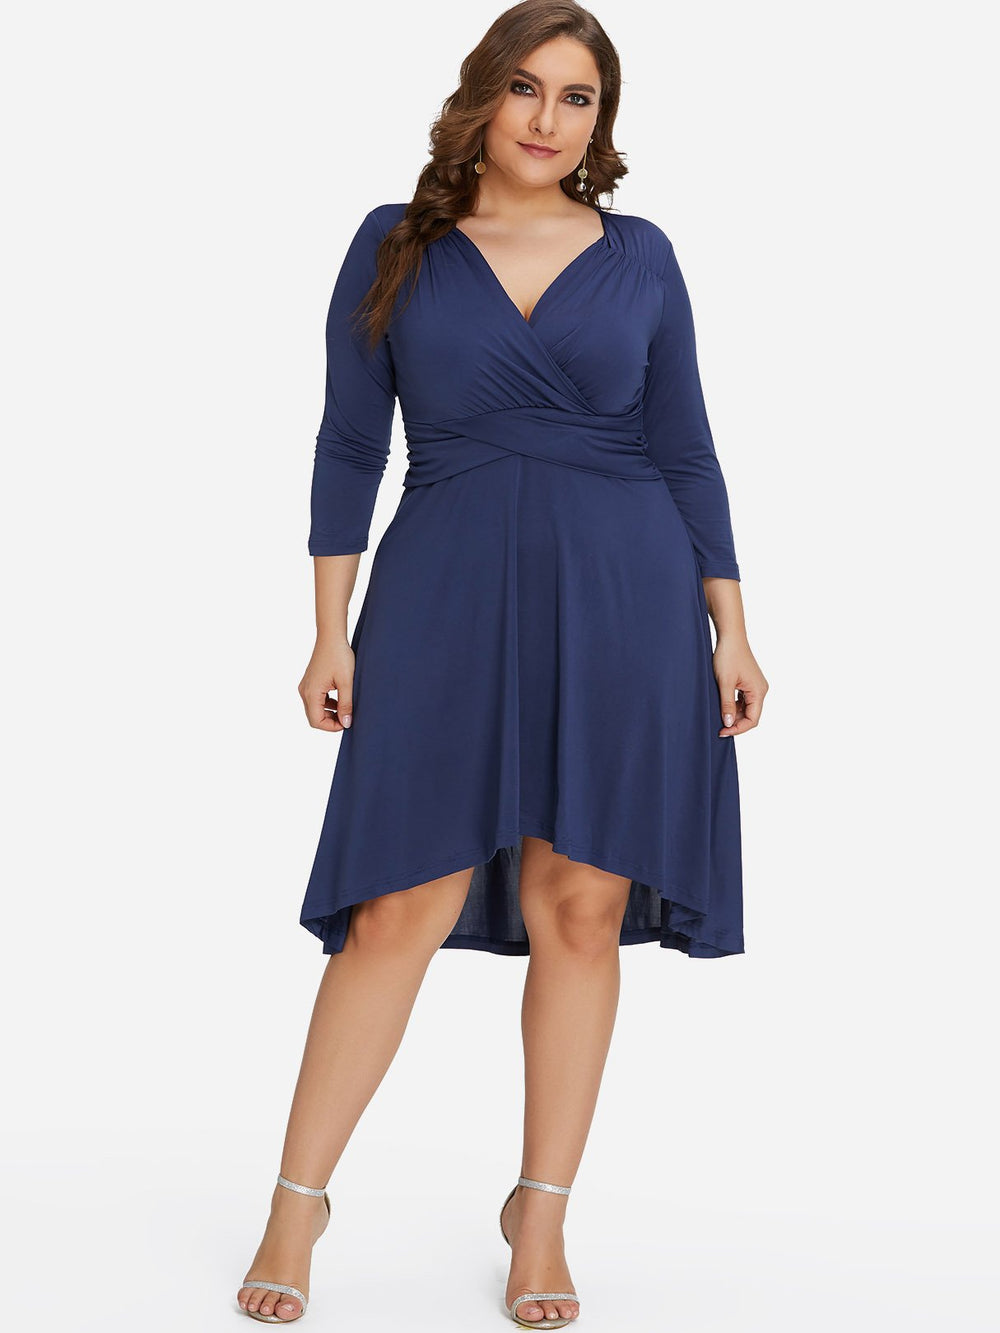 V-Neck Plain Wrap 3/4 Sleeve High-Low Hem Plus Size Dress